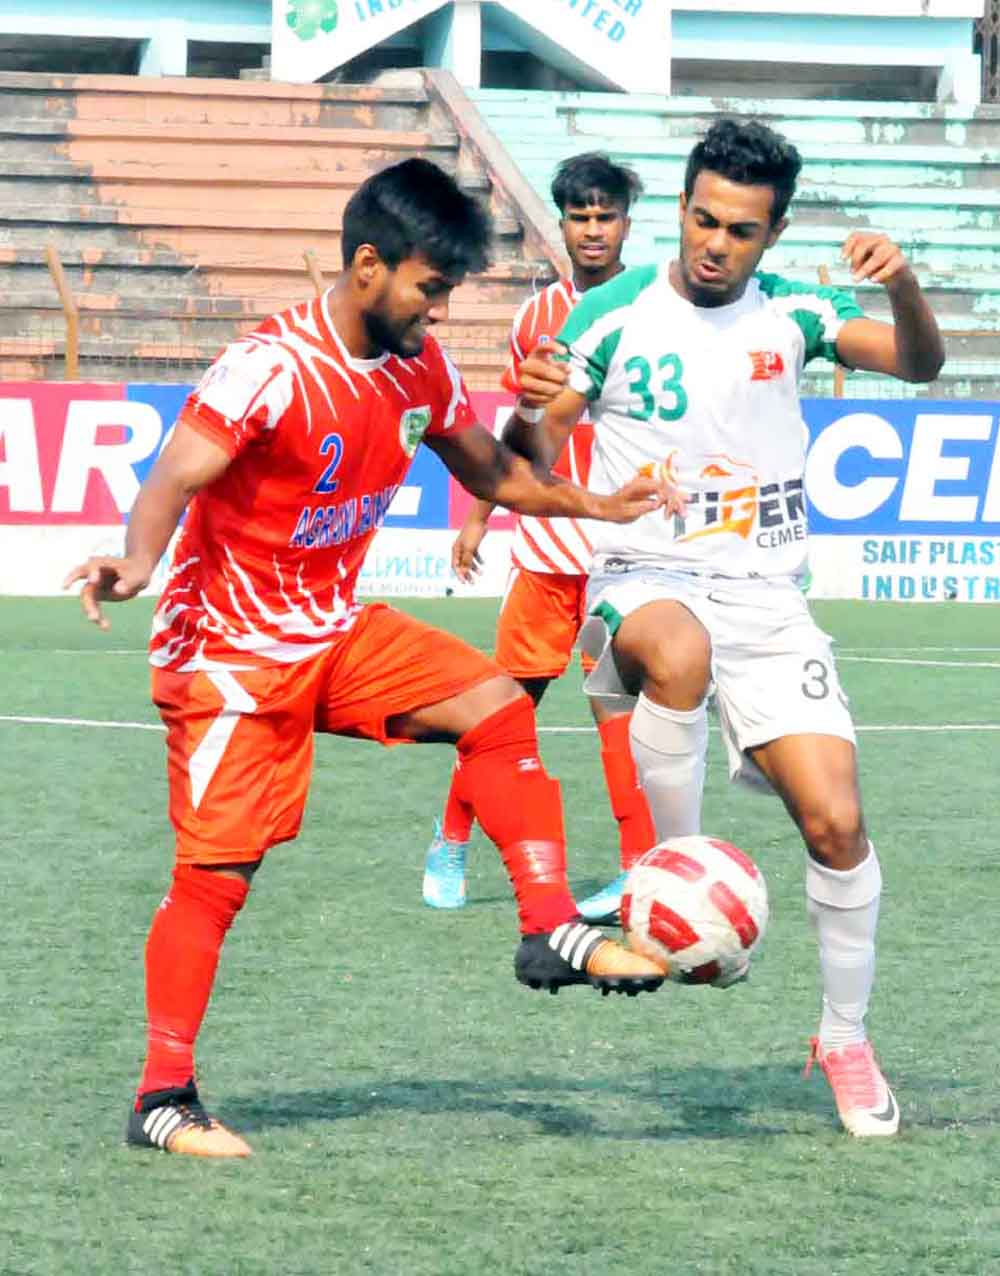 An action from the Marcel Bangladesh Championship League Football  match between Kawranbazar Progoti Sangho  and Agronibank SC Limited team at Bir Sreshtho Shaheed Sipahi Mohammad Mostafa Kamal Stadium in the city's Kamalapur  on Thursday. Agronibank won the match 1-0.